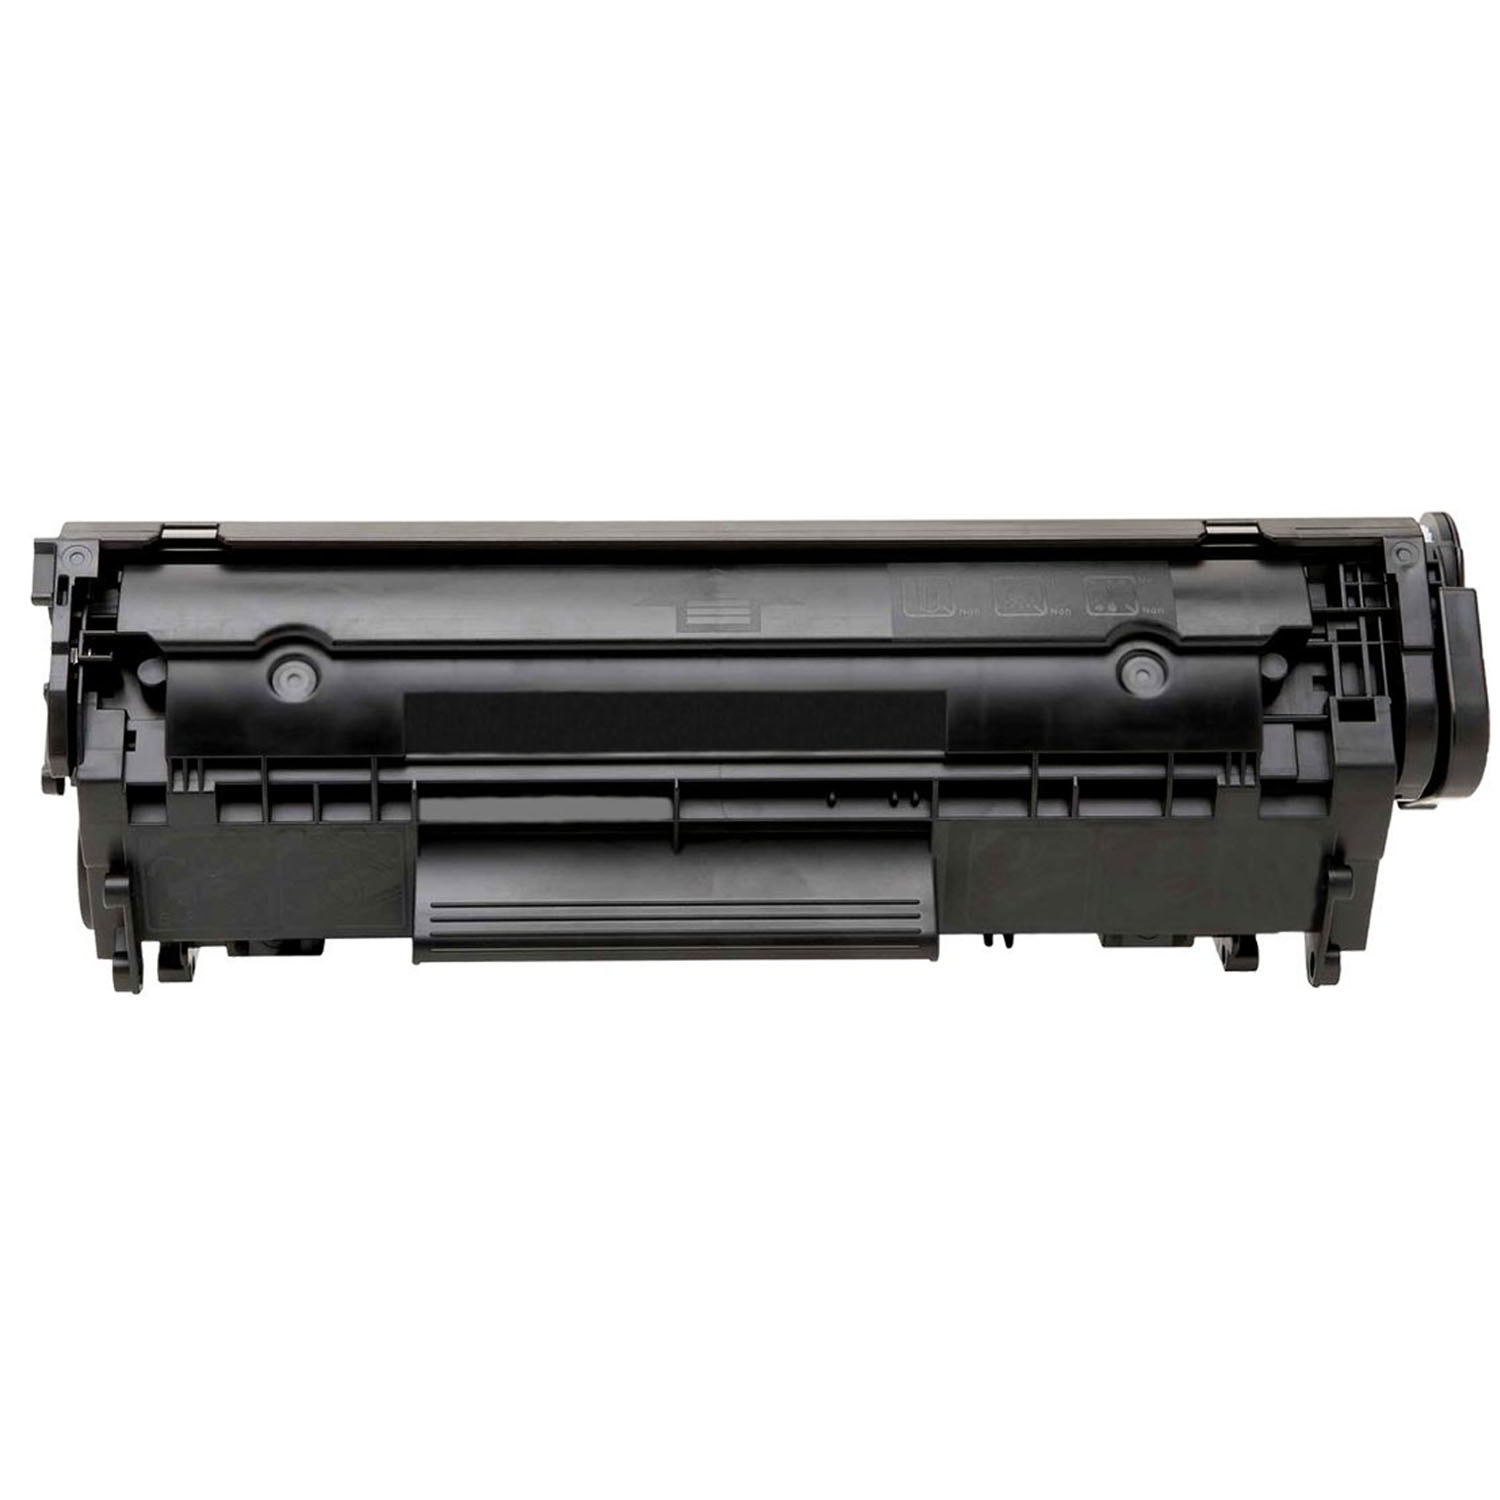 1 Black 12A Q2612A Toner Cartridge Replacement for HP Laserjet 1020 1022n 1022nw 1010 1012 1015 1018 3052 MFP 3055 MFP 3030 MFP 3020 MFP 3380 MFP 3015 MFP M1319f M1120 MFP Printer,Sold by TopInk